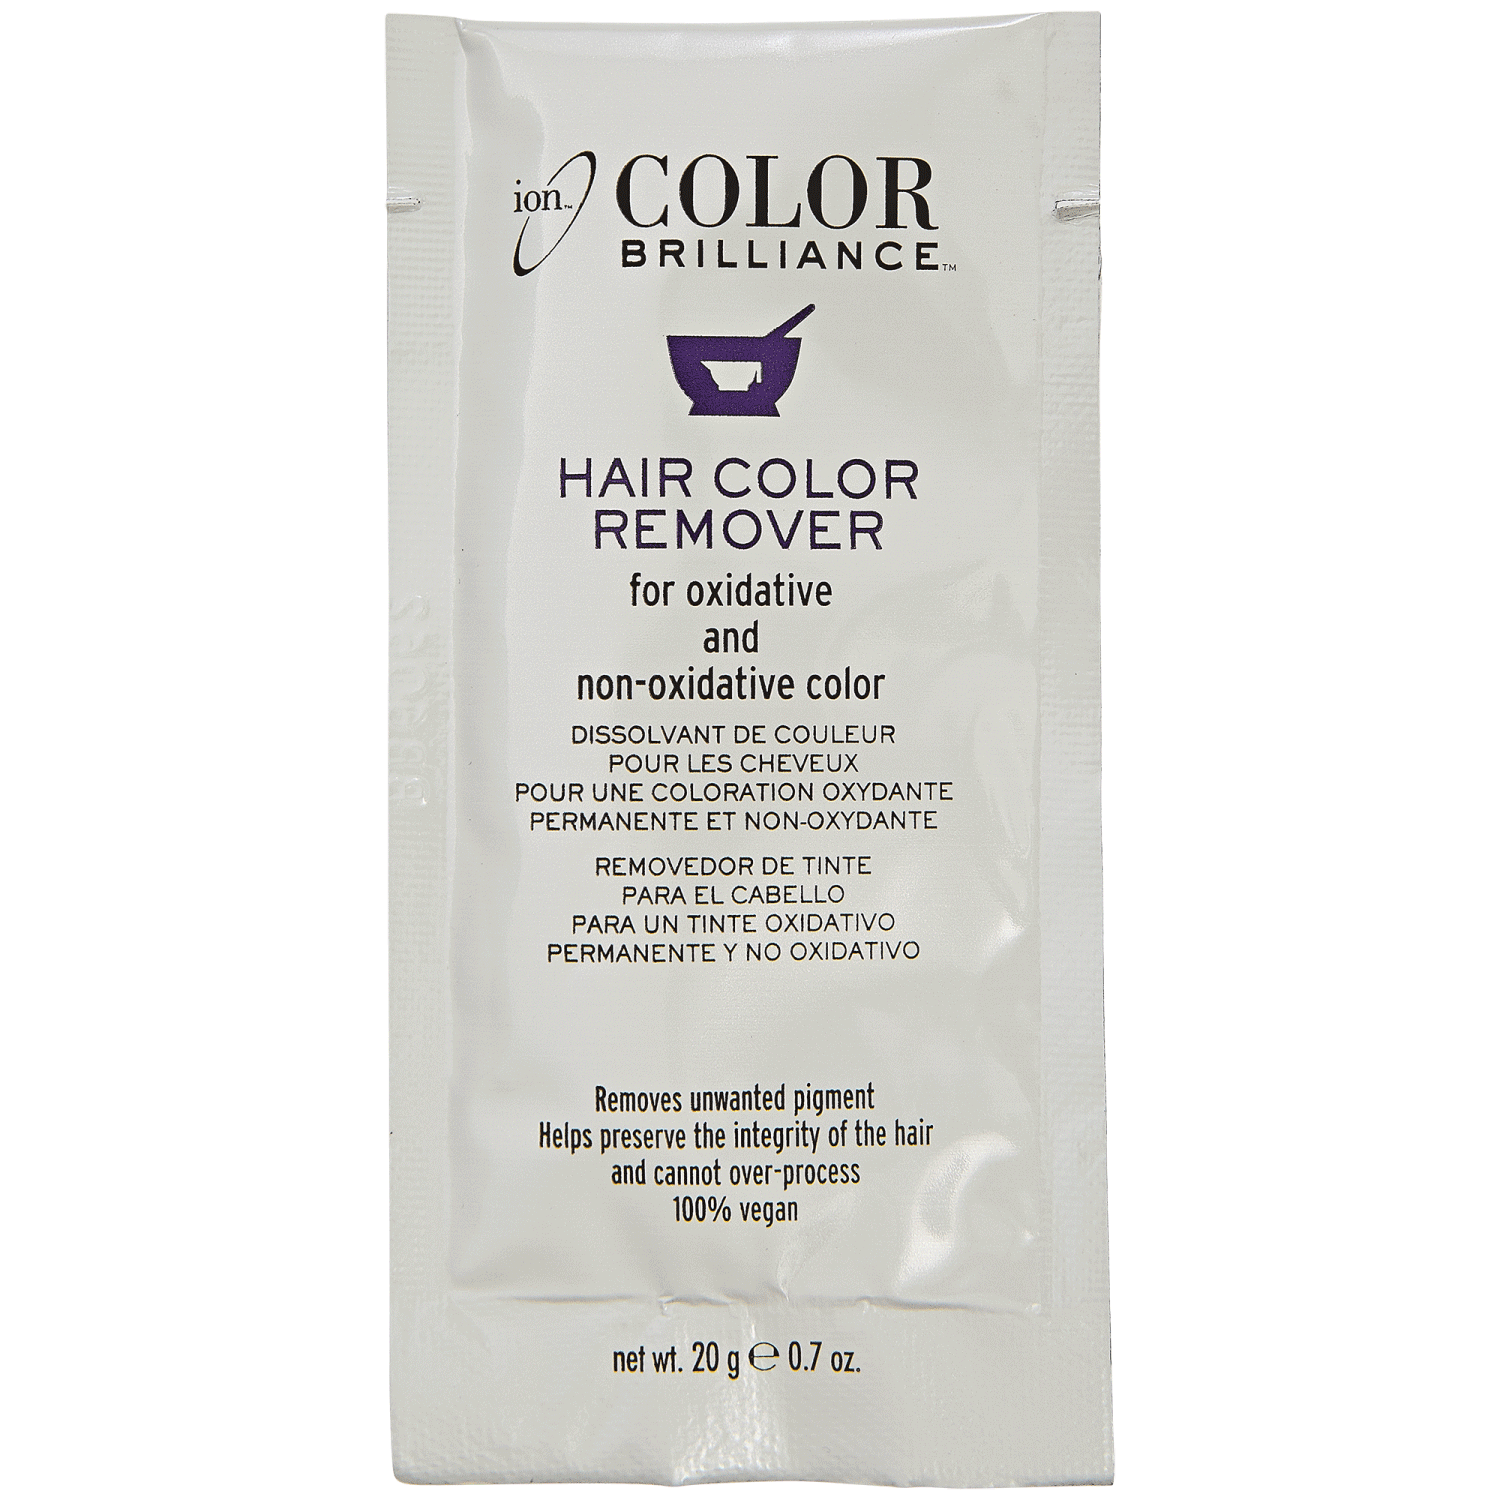 Ion Color Brilliance Hair Color Remover Removes Unwanted Pigments While Preserving The Integrity Of The Hair Hair Color Remover Colour Remover Ion Hair Colors